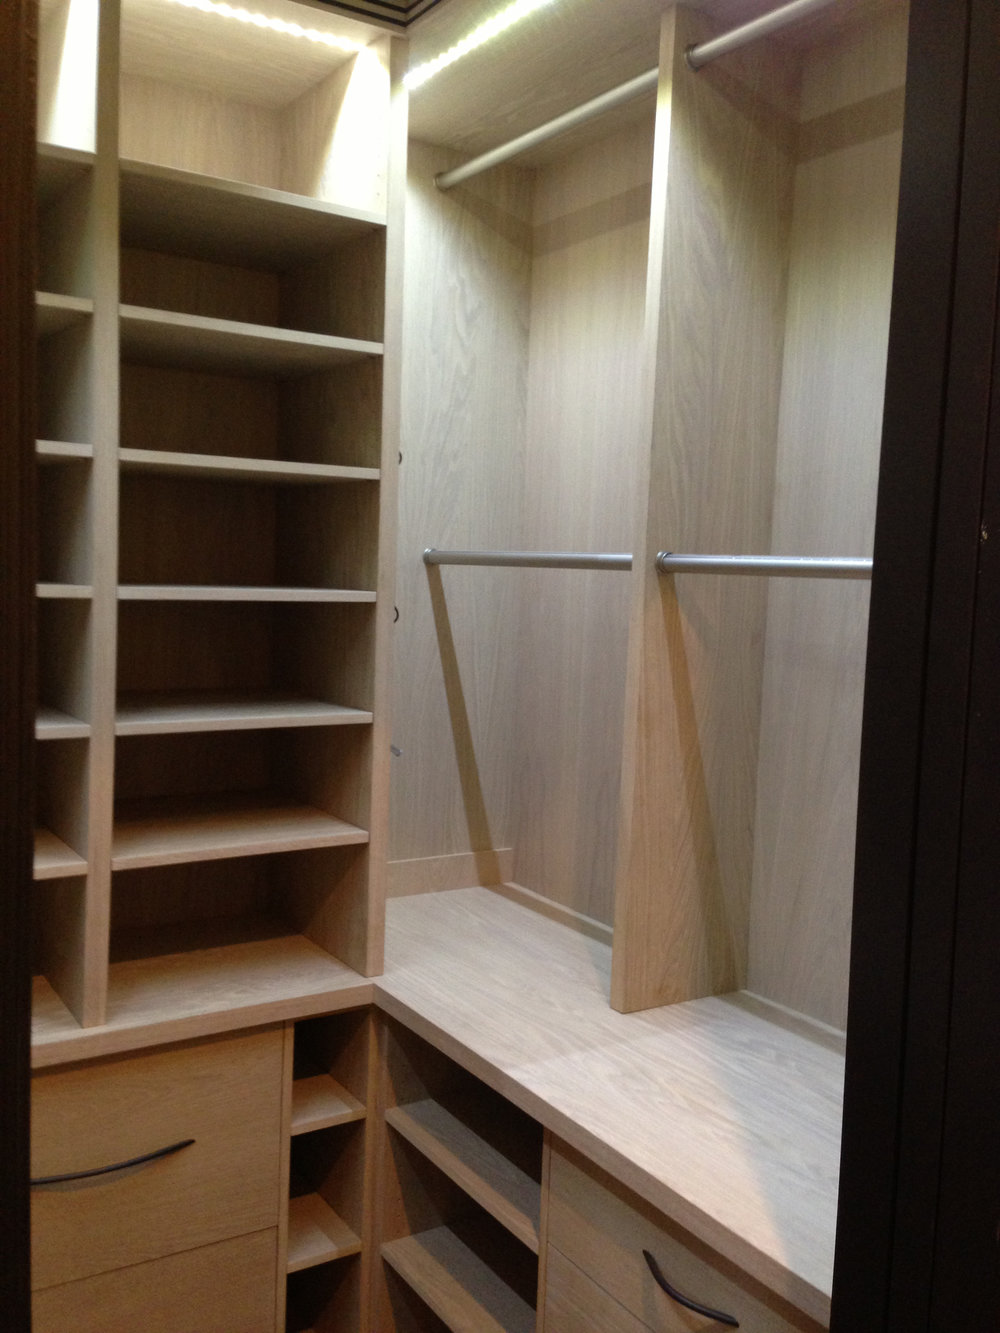 White-Oak-Closet-with-hanging-racks.jpg